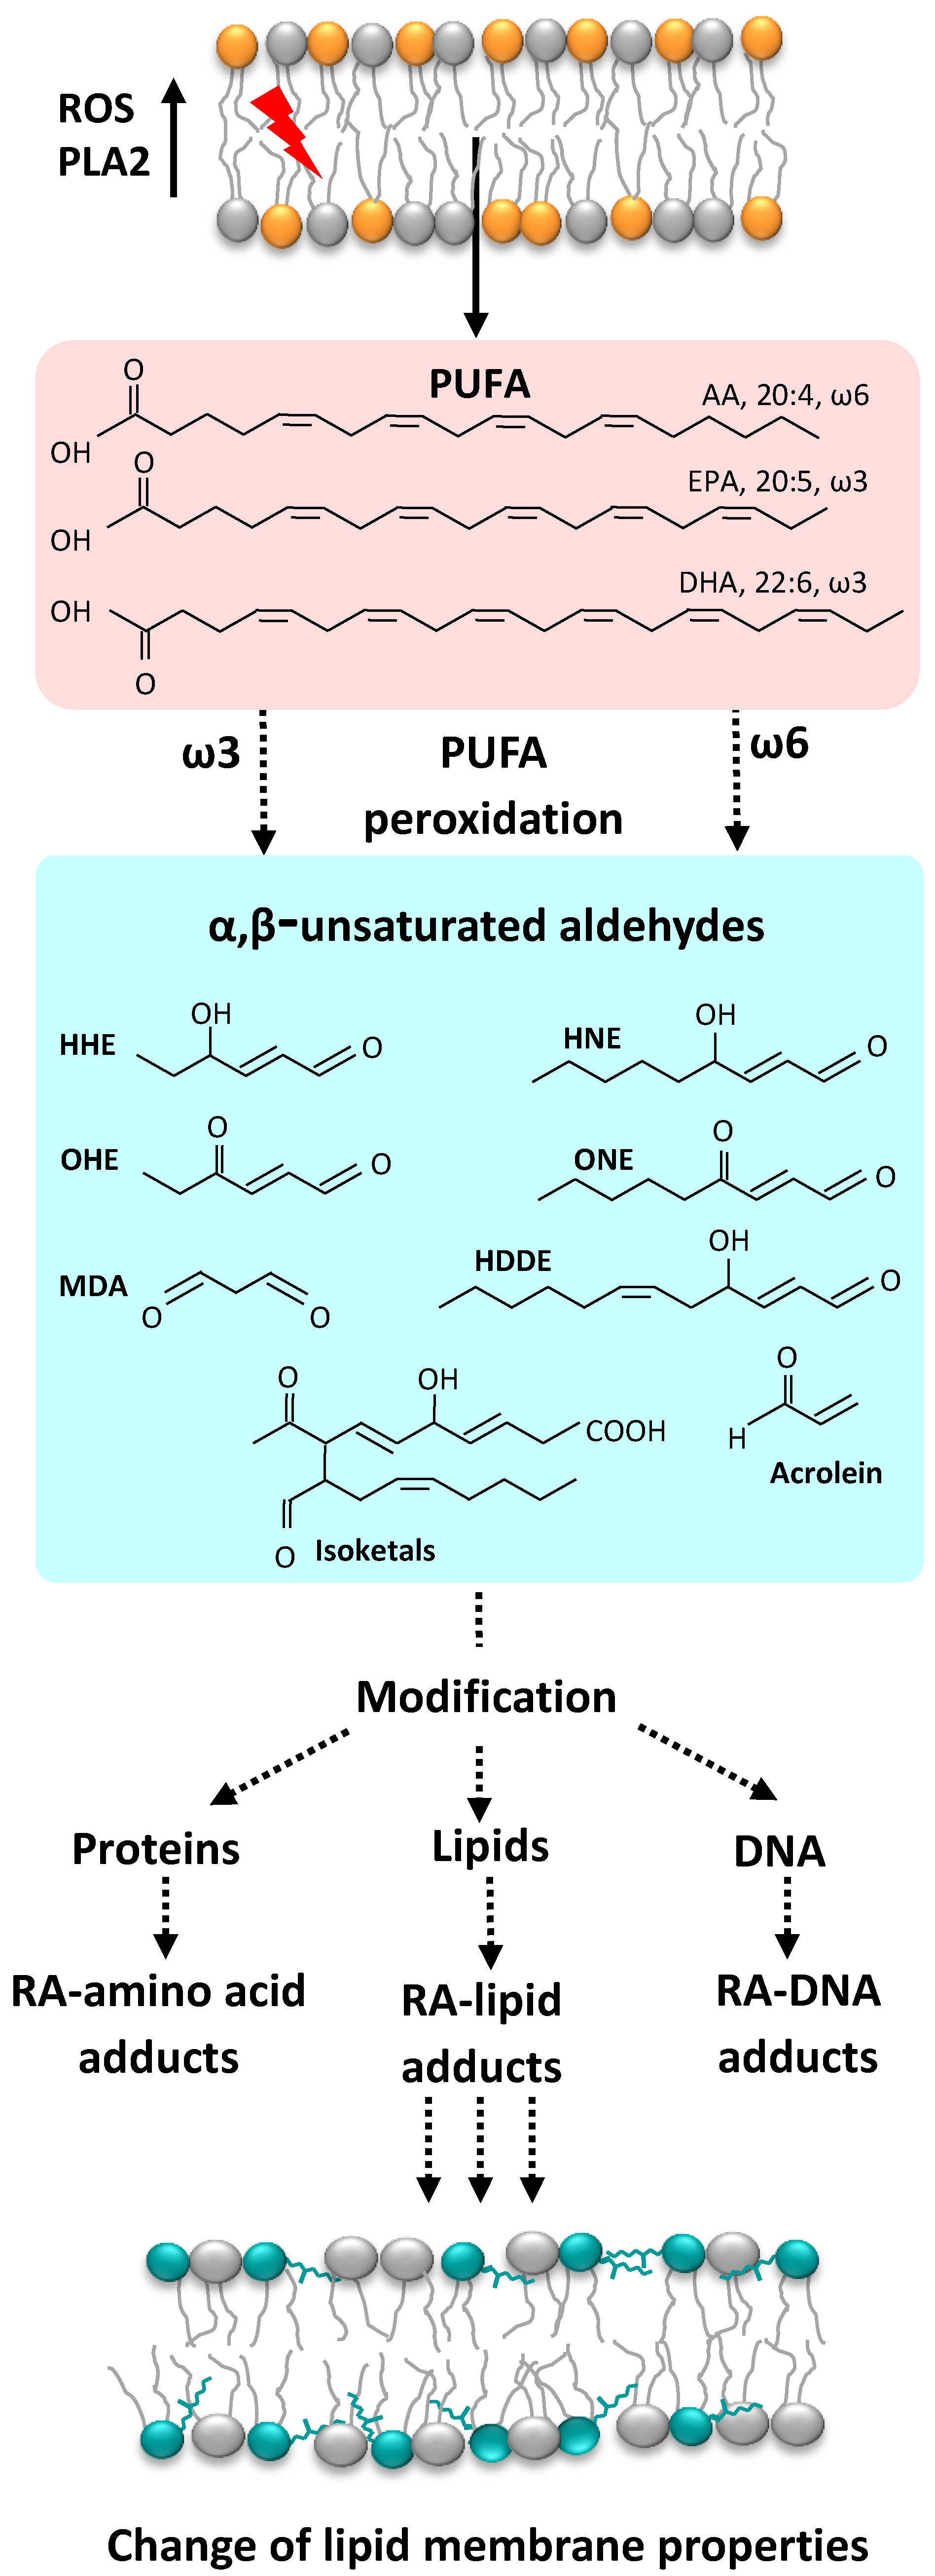 Molecules | Free Full-Text | The Role of Phosphatidylethanolamine Adducts  in Modification of the Activity of Membrane Proteins under Oxidative Stress  | HTML